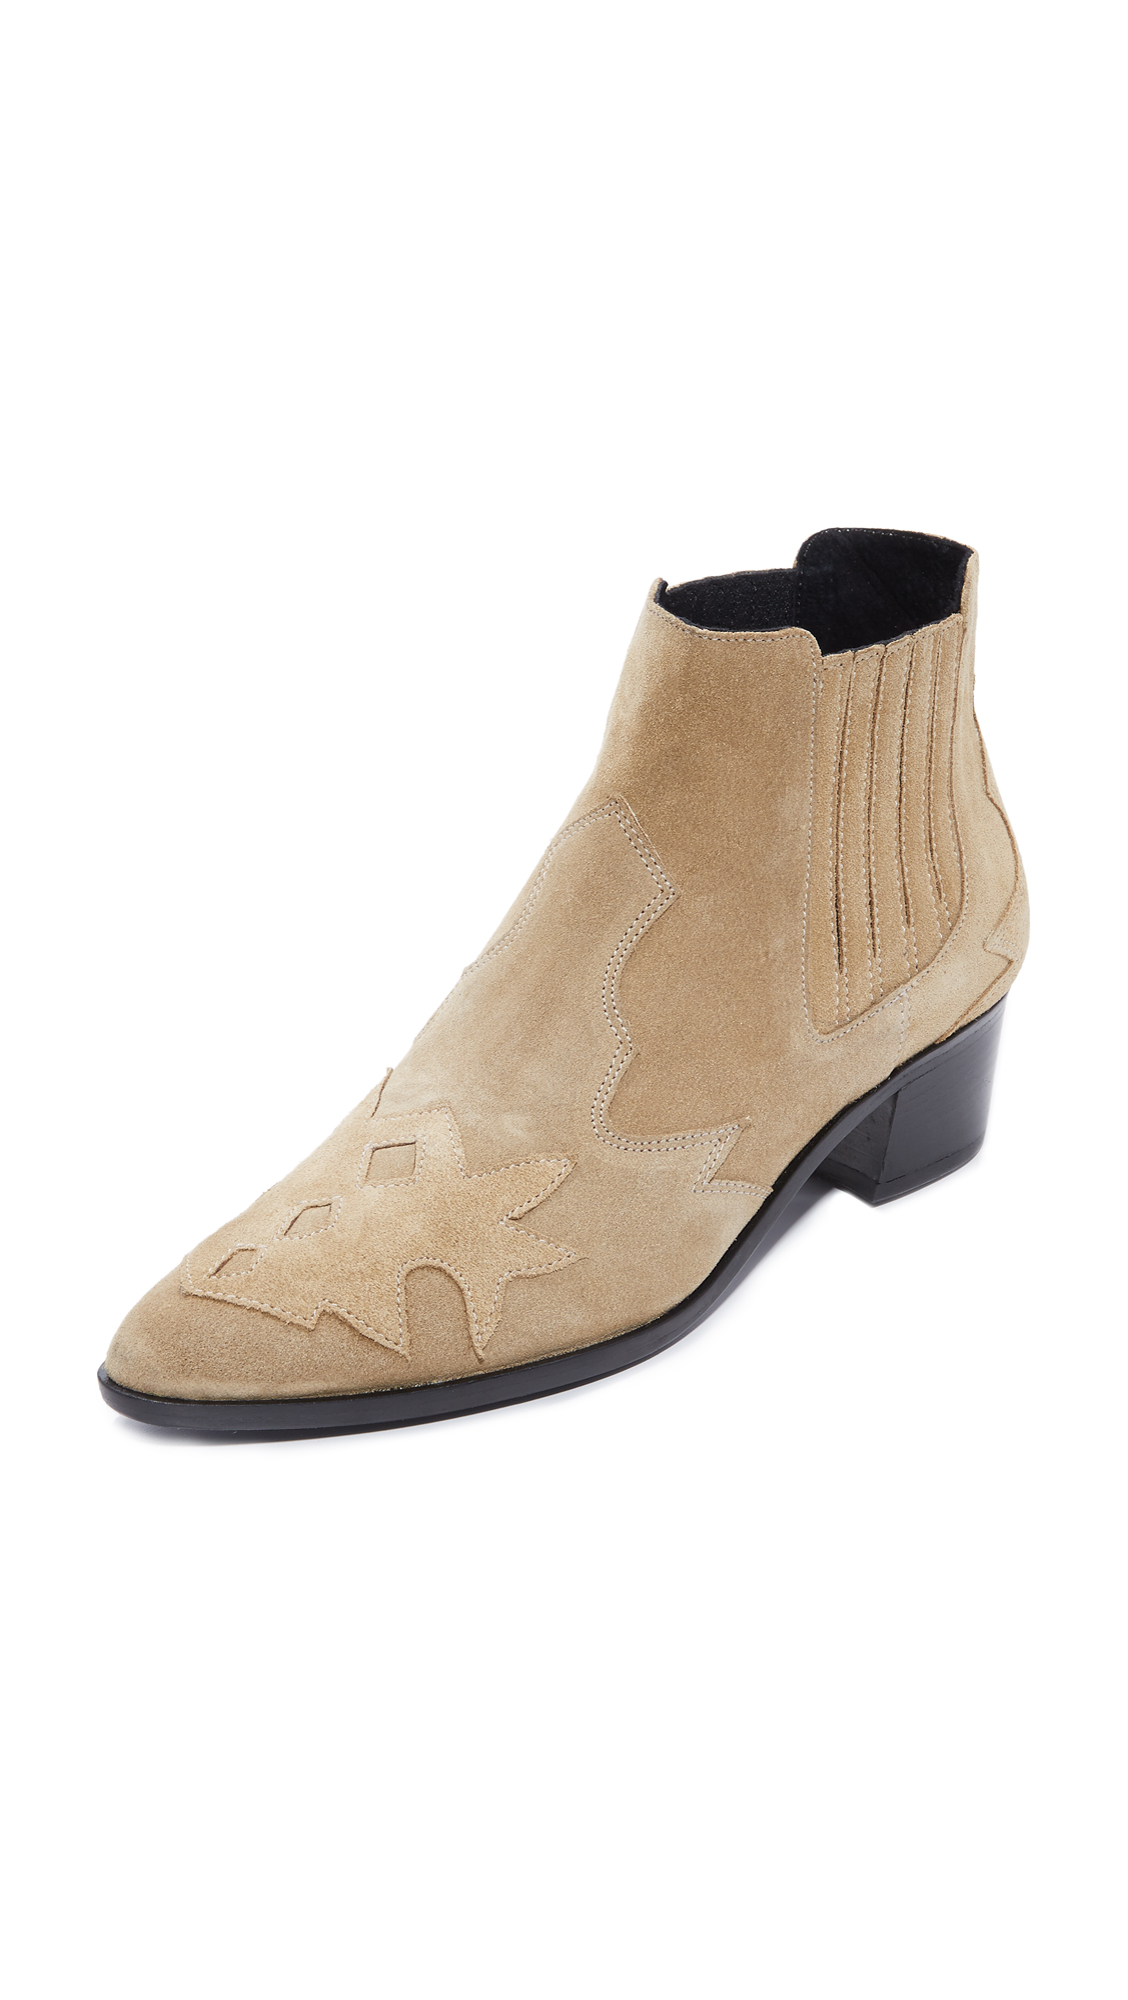 The Archive Bleeker Booties - Camel